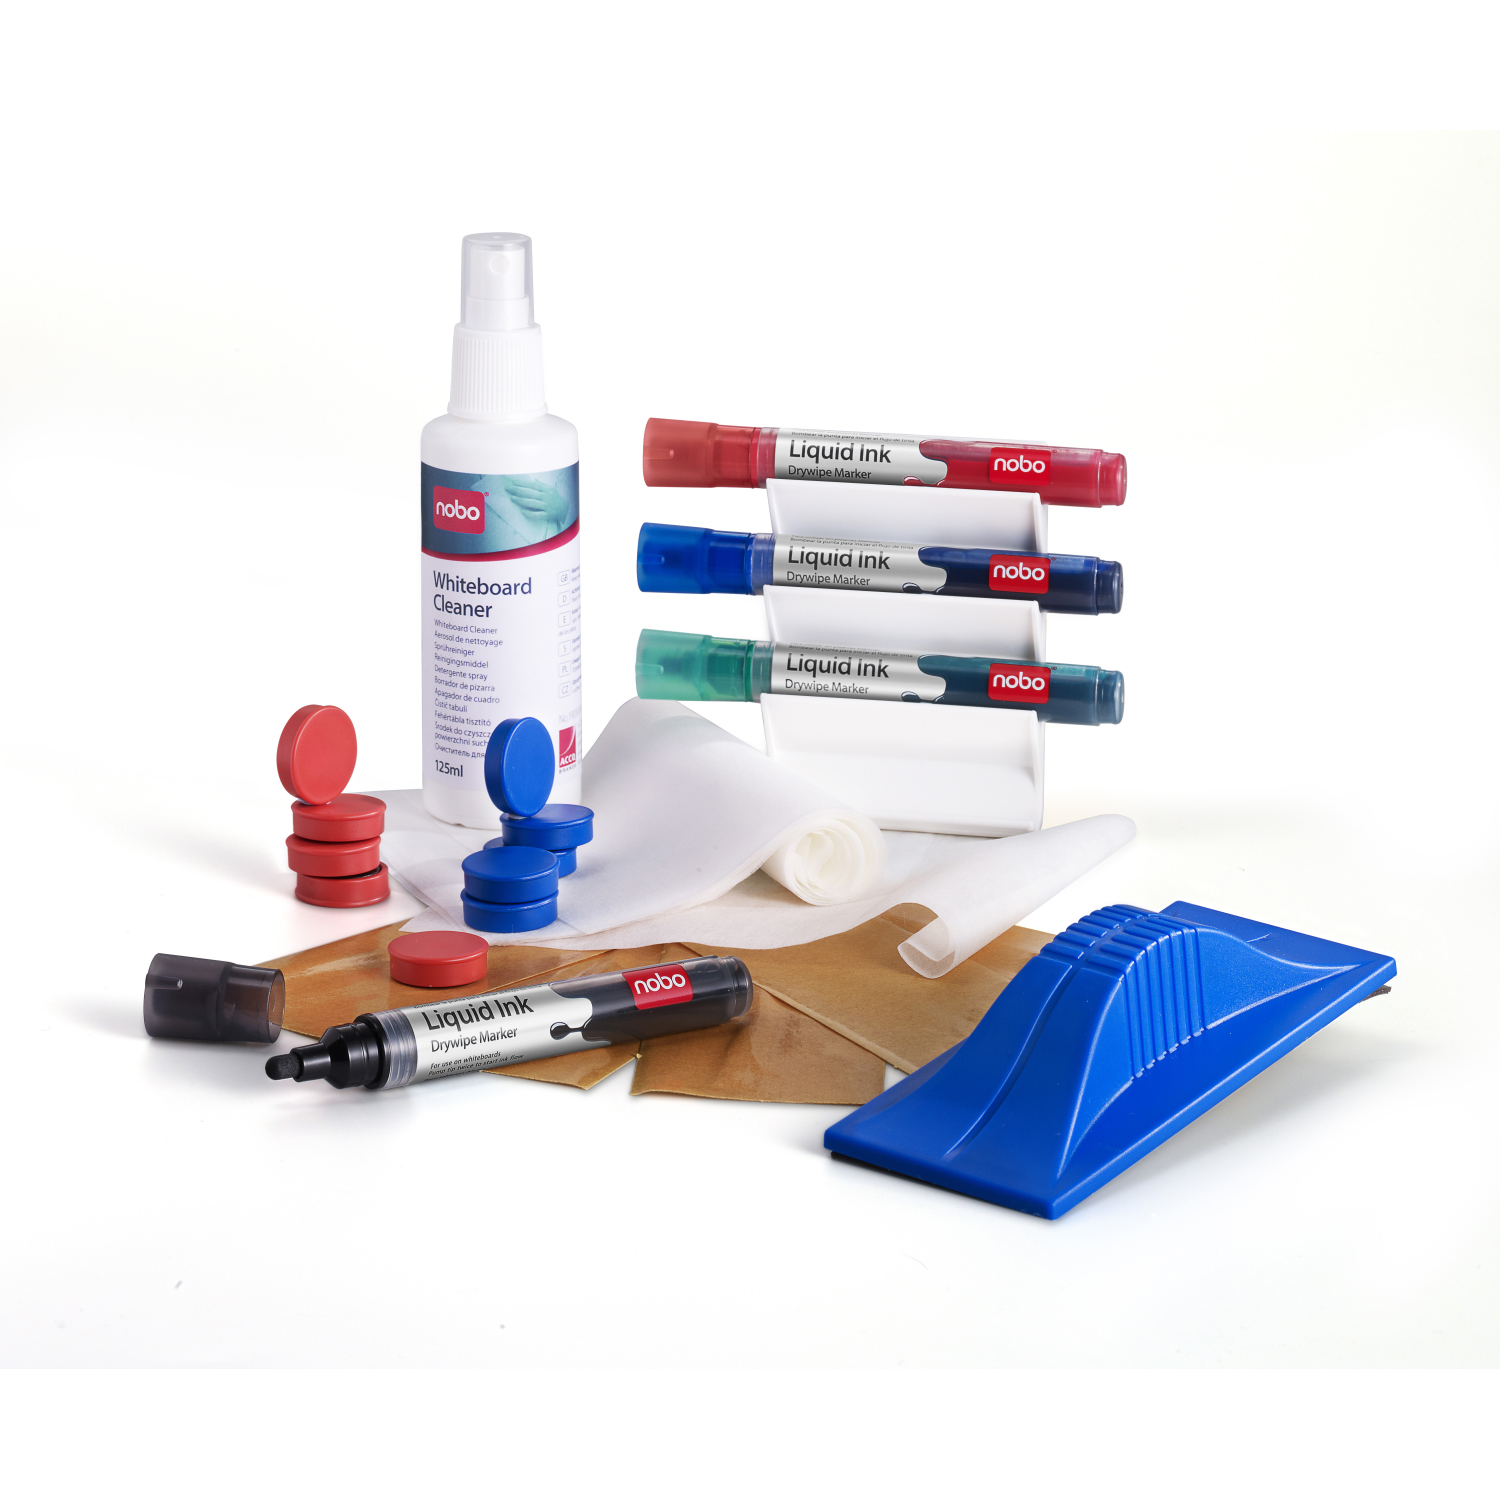 Pen Tray Nobo Whiteboard User Kit 4 Mrkrs/Eraser/Refills/Absorbent Cloths/125ml Cleaning Spray/Magnets Ref 1901430